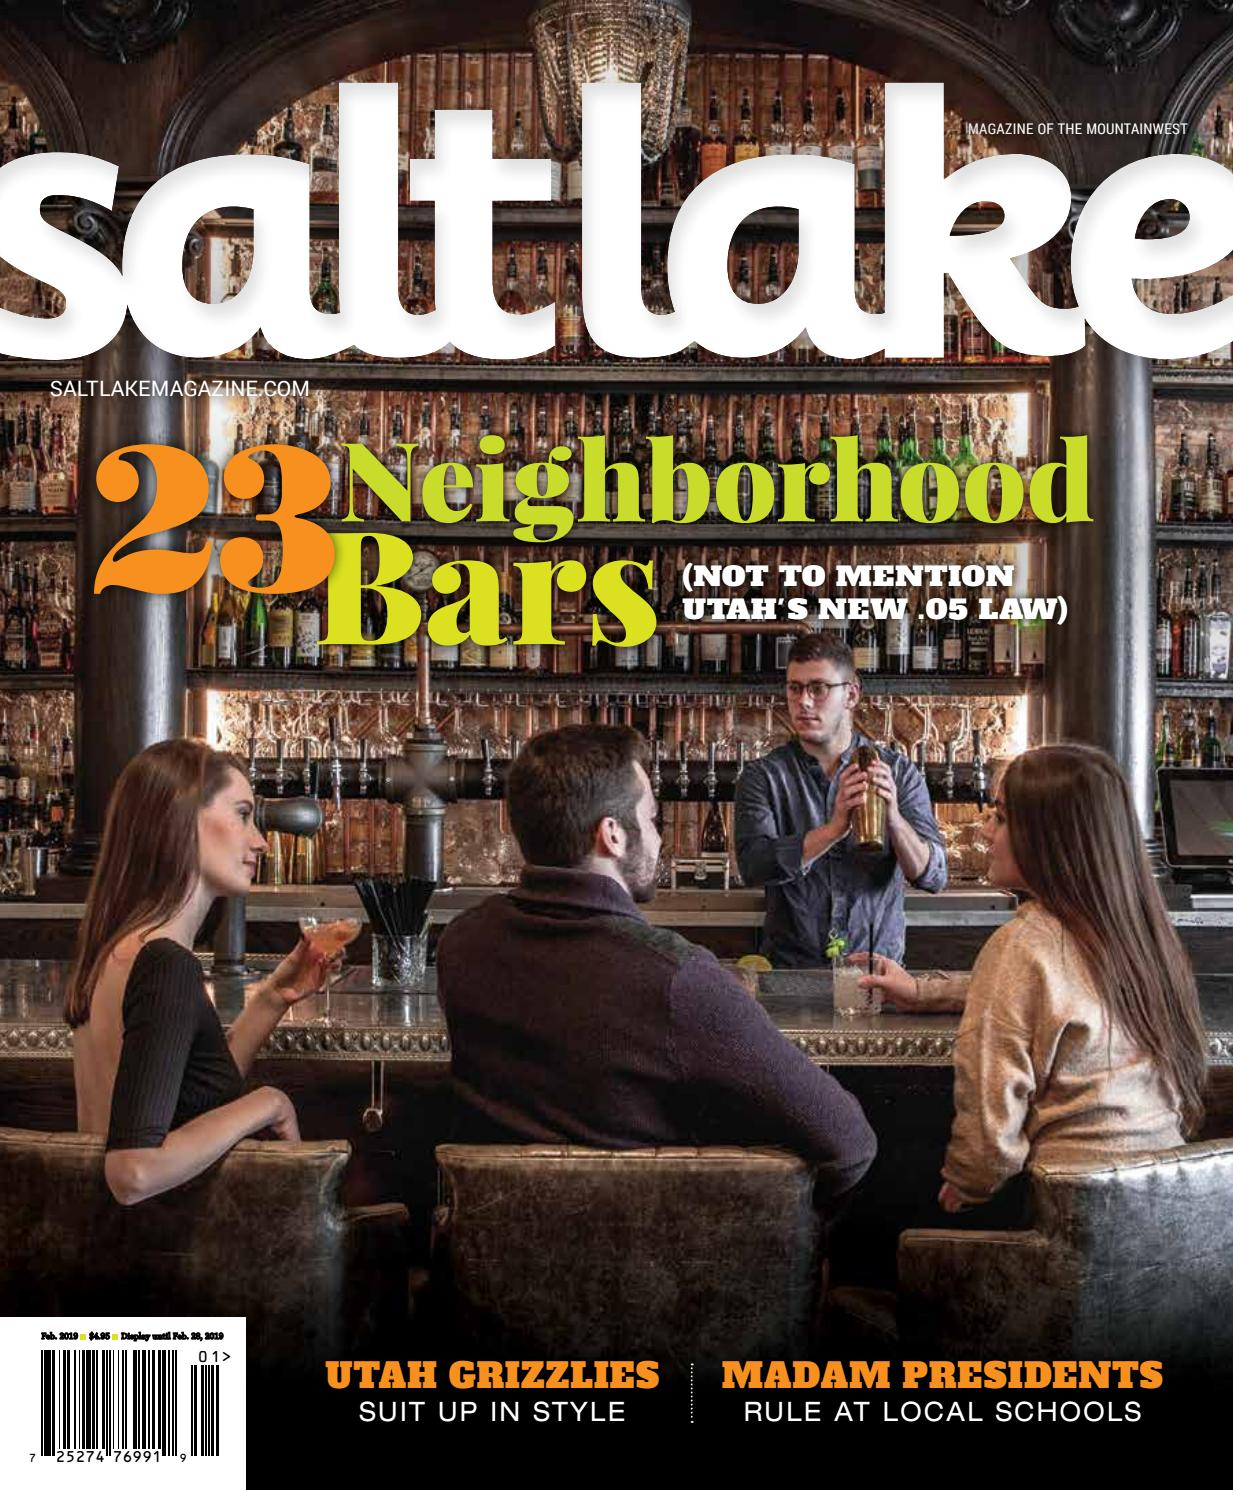 Umani Cucina Food Truck Utah Salt Lake Magazine Jan Feb19 By Salt Lake Magazine Issuu